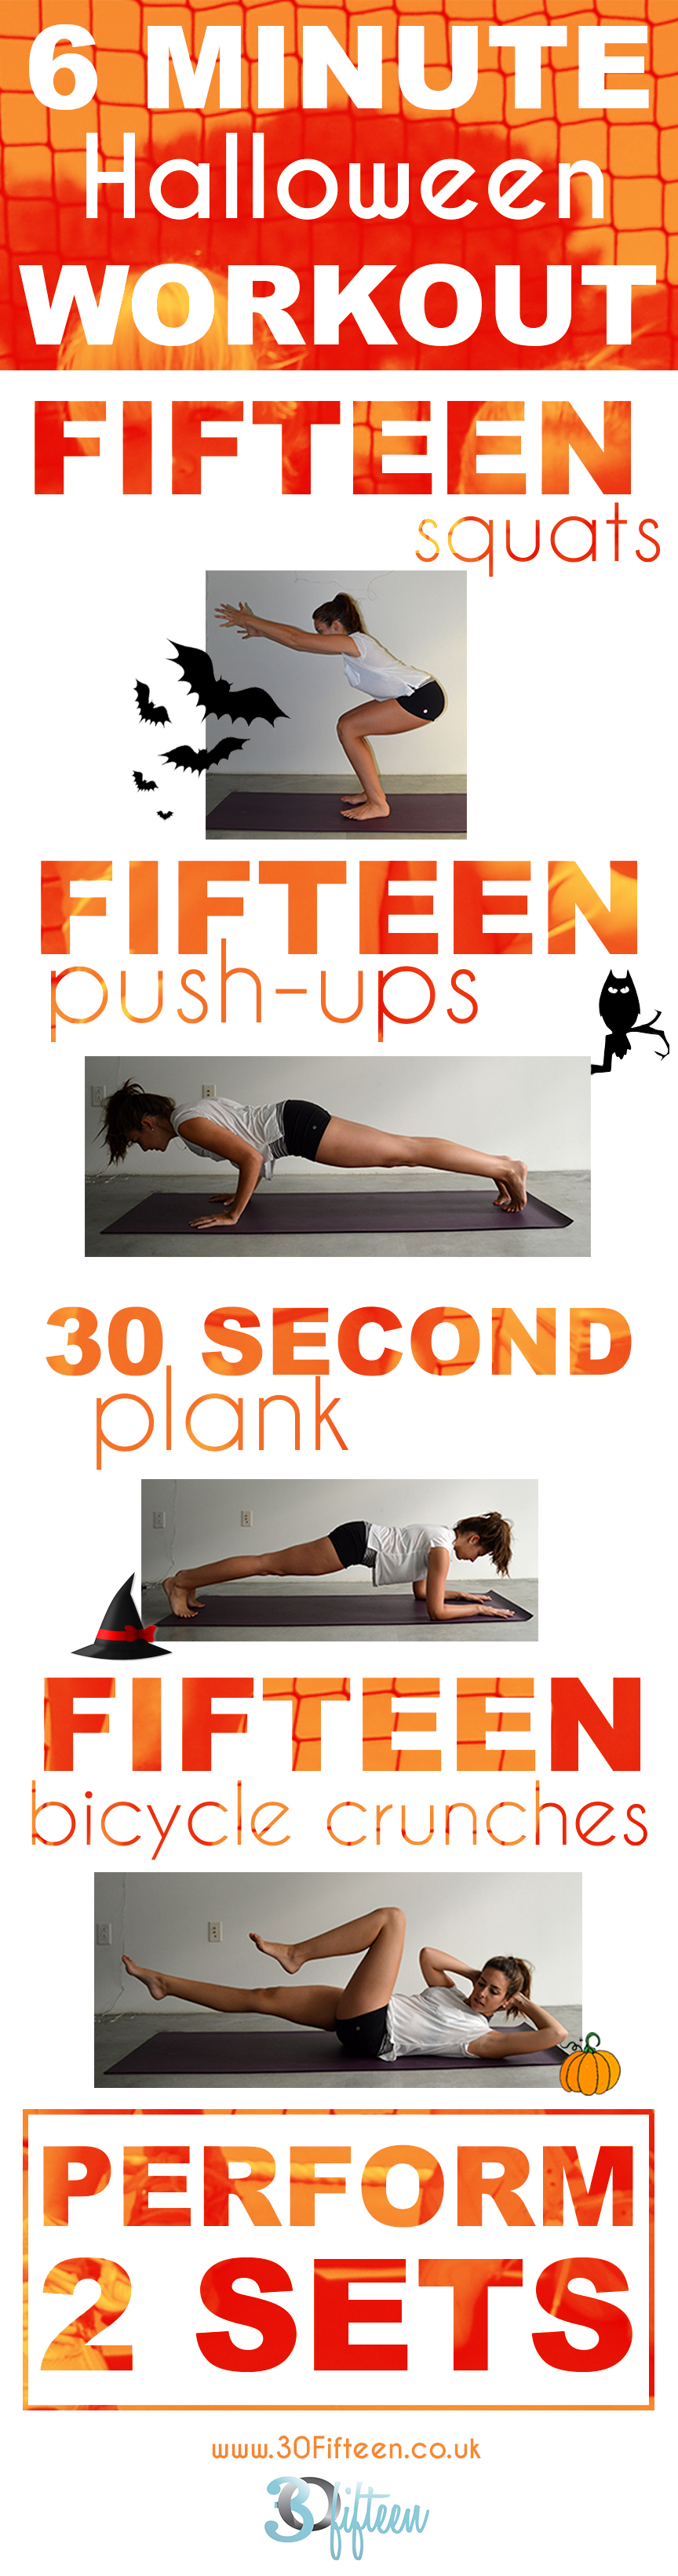 30Fifteen-halloween-workout